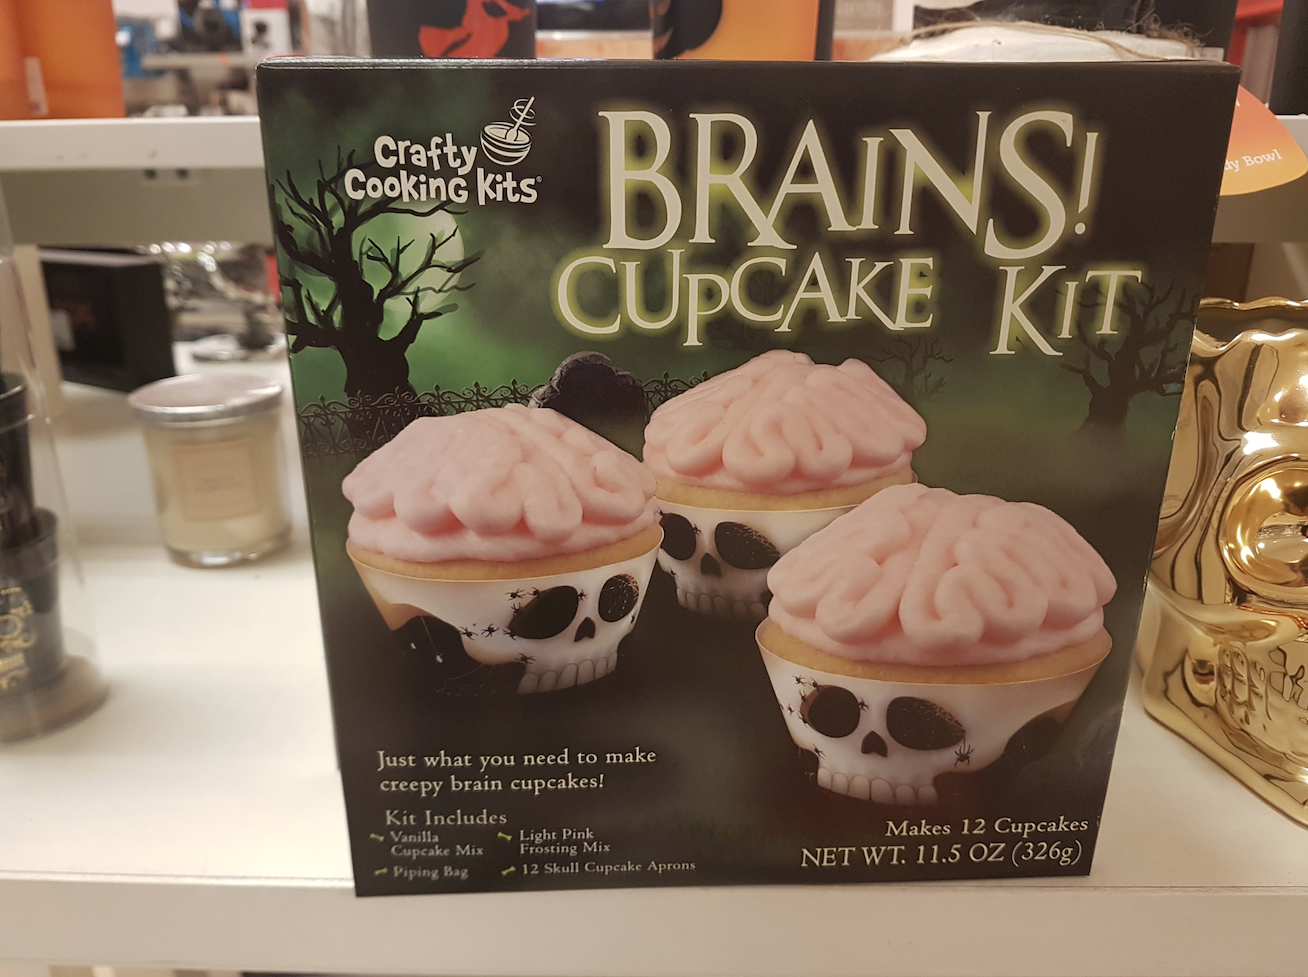 TK Maxx Store Review 2017 - Brain Cupcakes